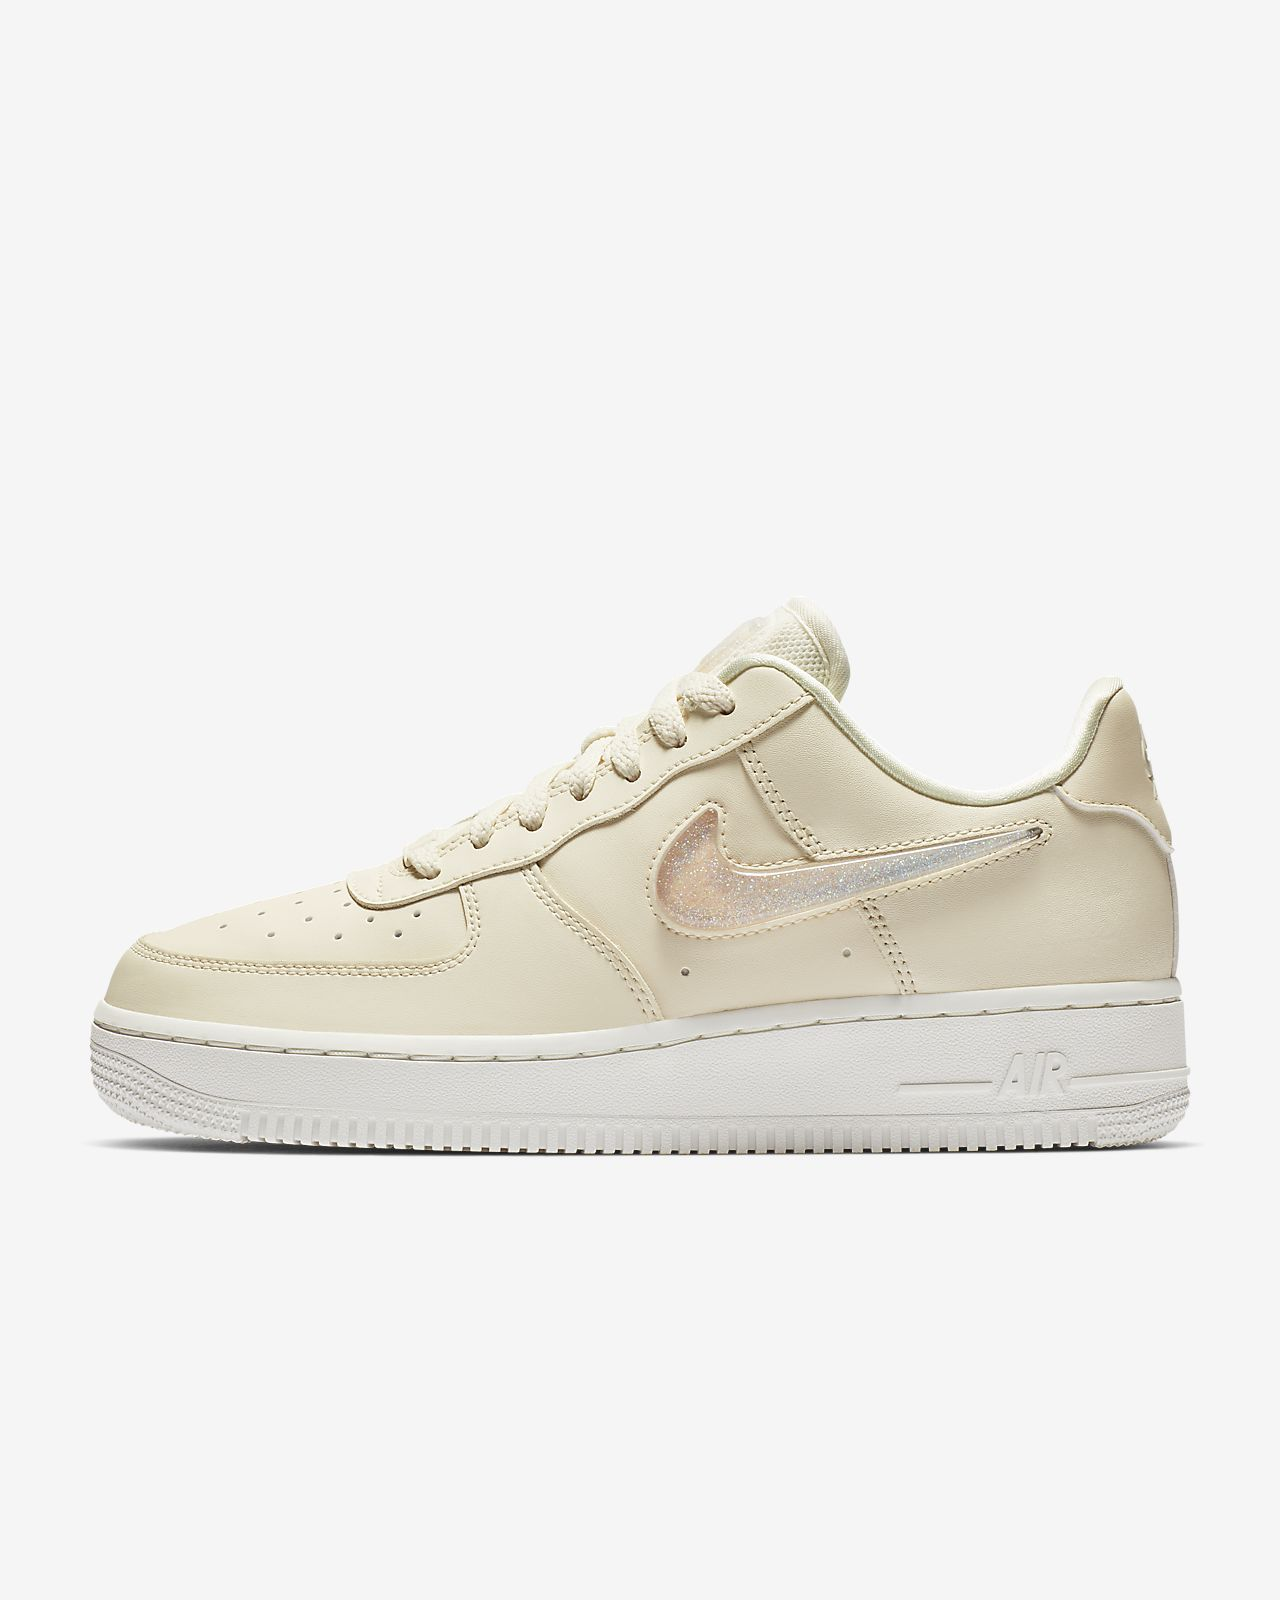 the latest 63f8e 6b8b7 ... Chaussure Nike Air Force 1 07 SE Premium pour Femme